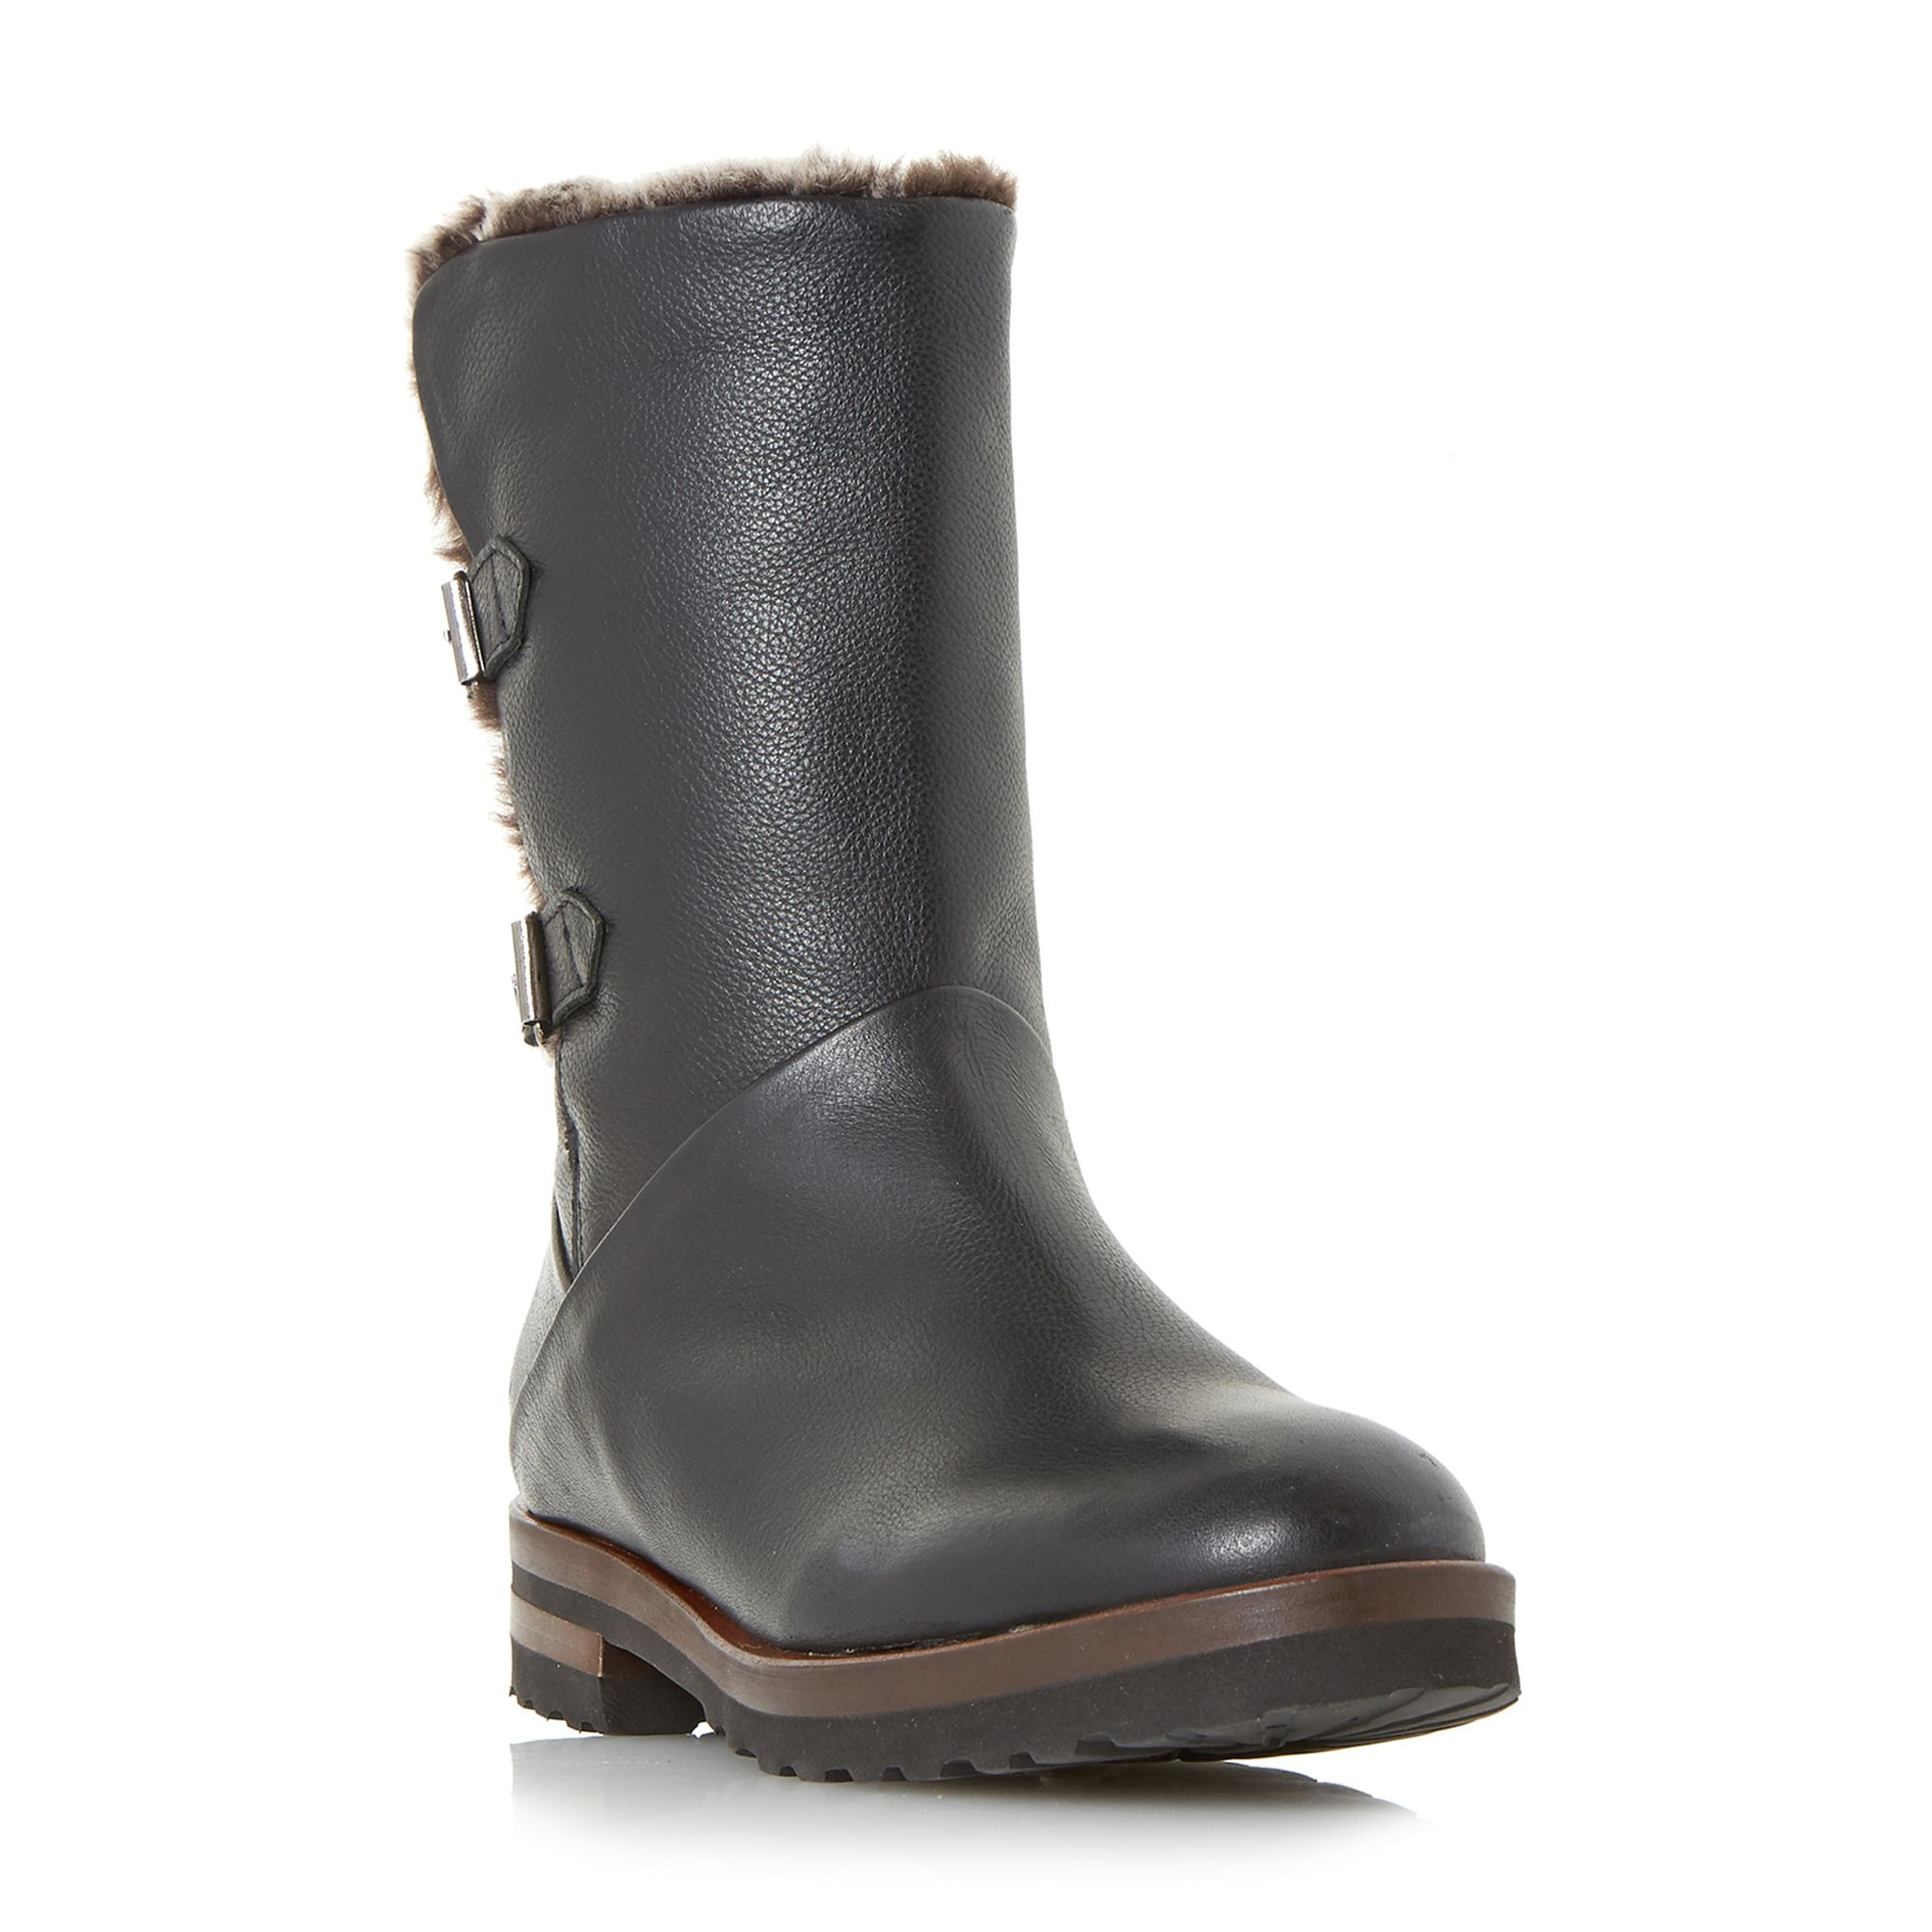 Retro Boots, Granny Boots, 70s Boots Dune Raylan Double Buckle Fur Lined Boots Black £140.00 AT vintagedancer.com